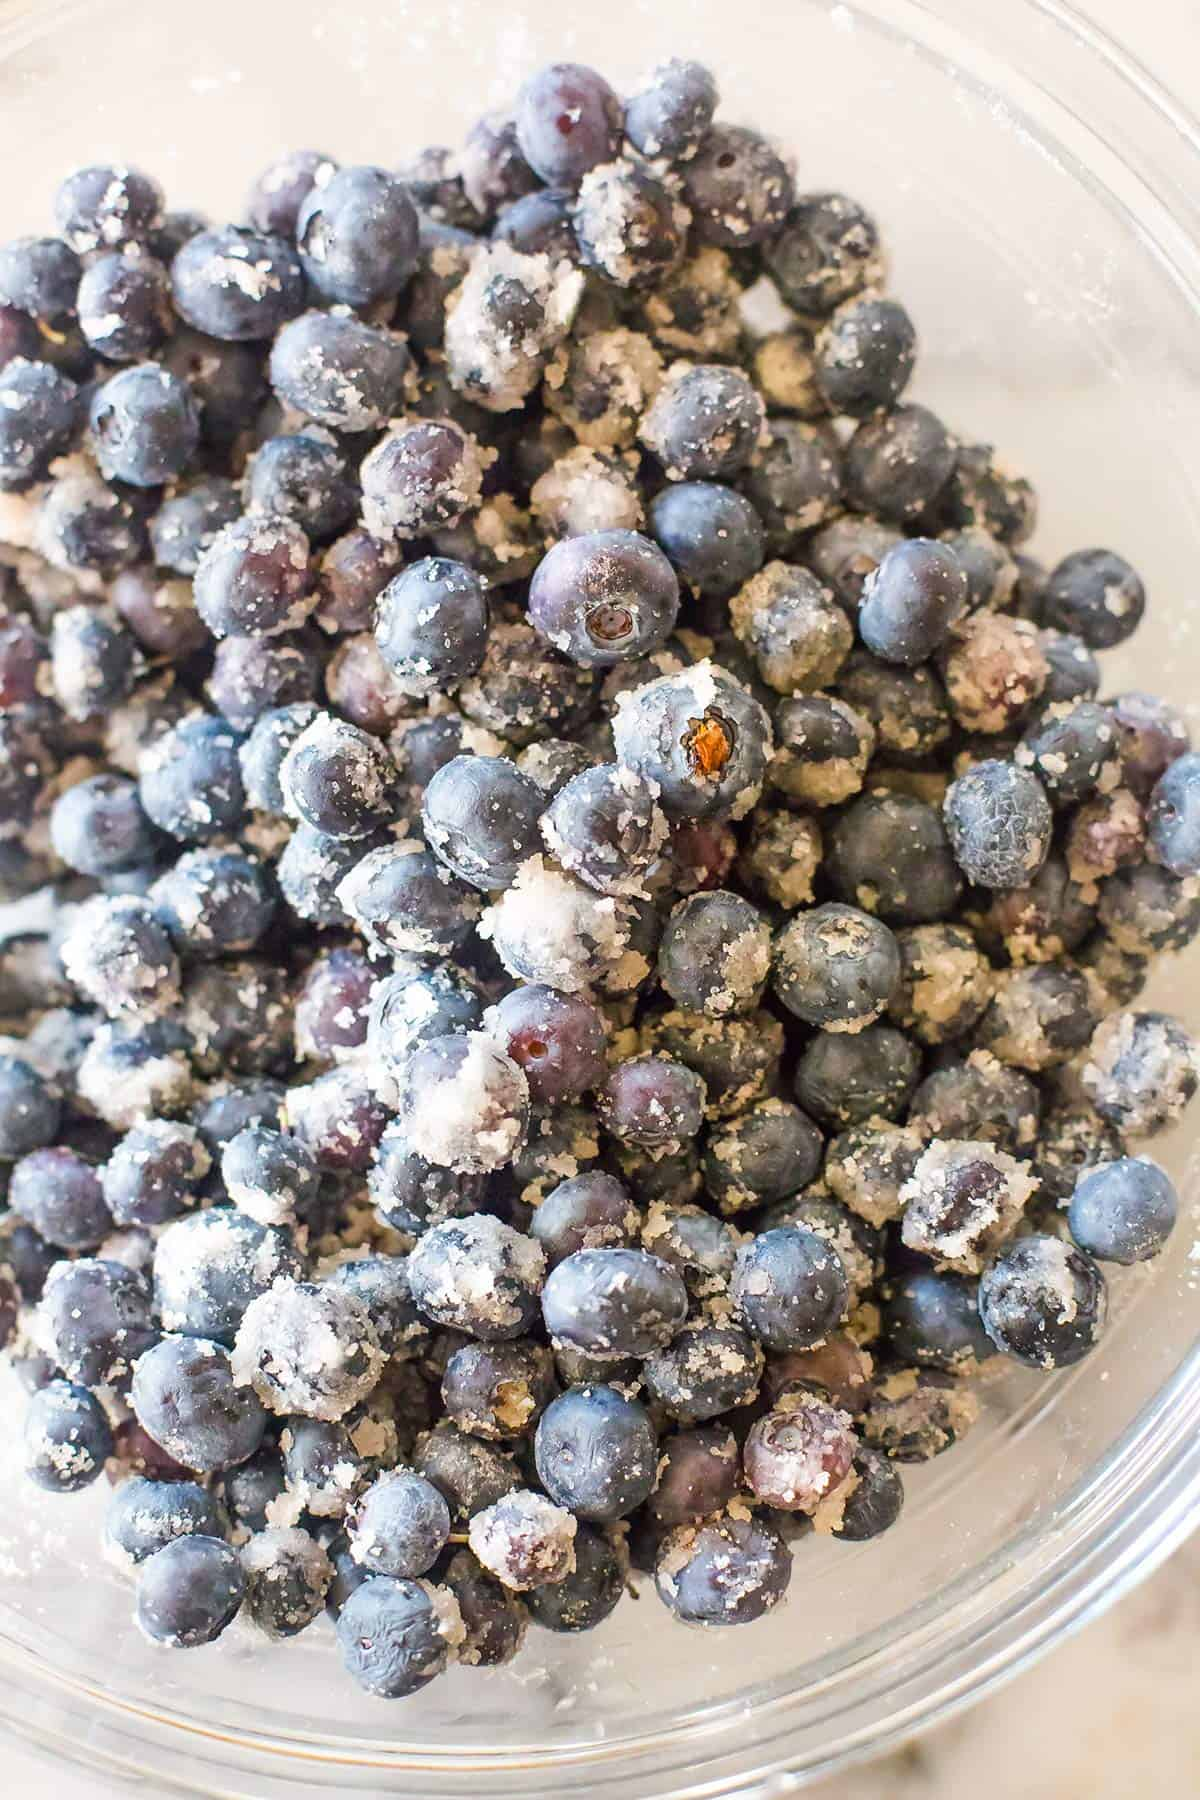 Blueberries tossed with sugar and lemon juice.